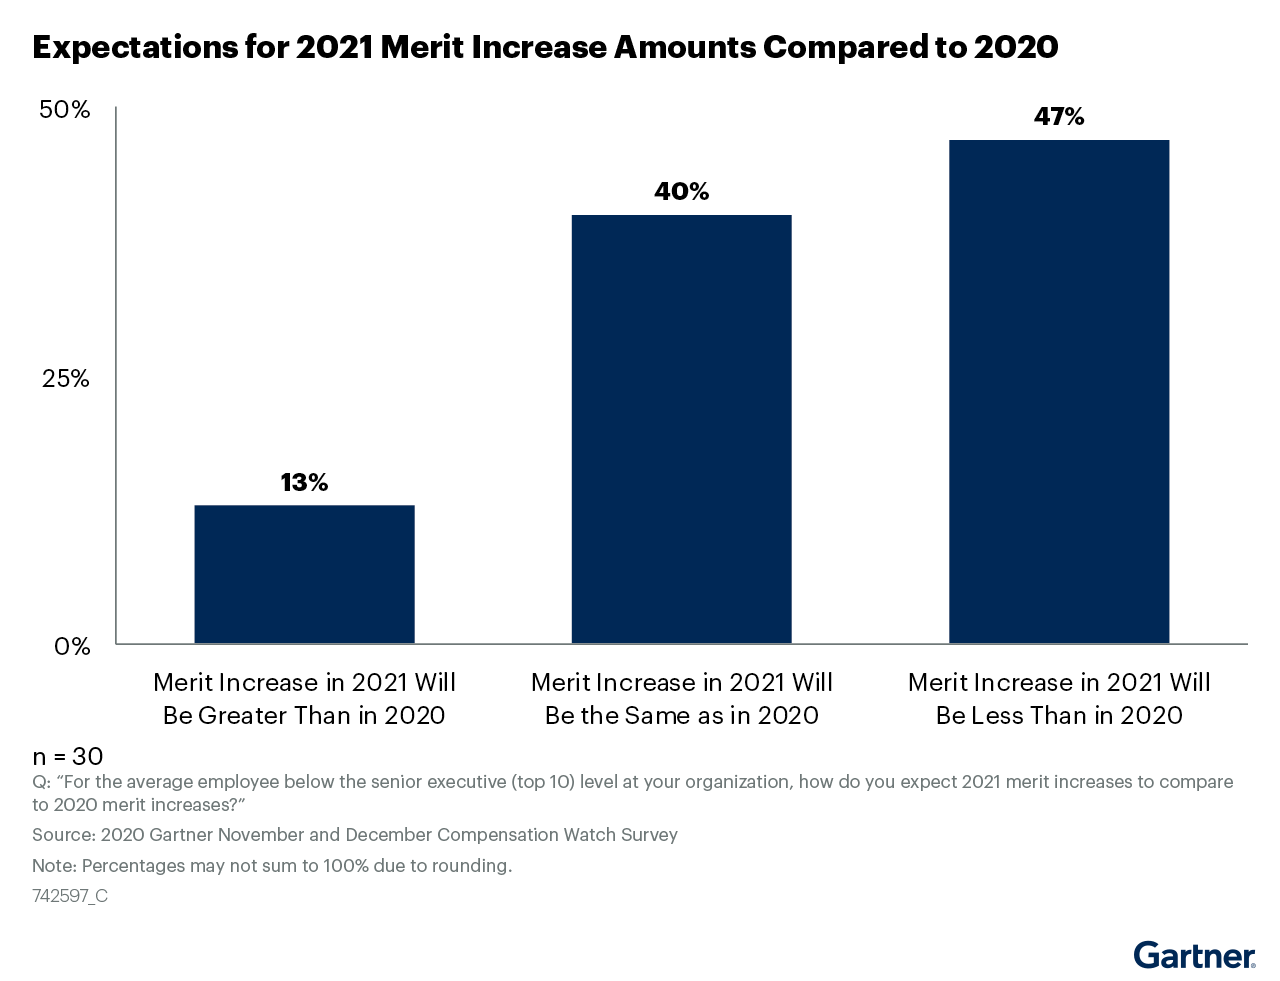 Figure 2: Expectations for 2021 Merit Increase Amounts Compared to 2020